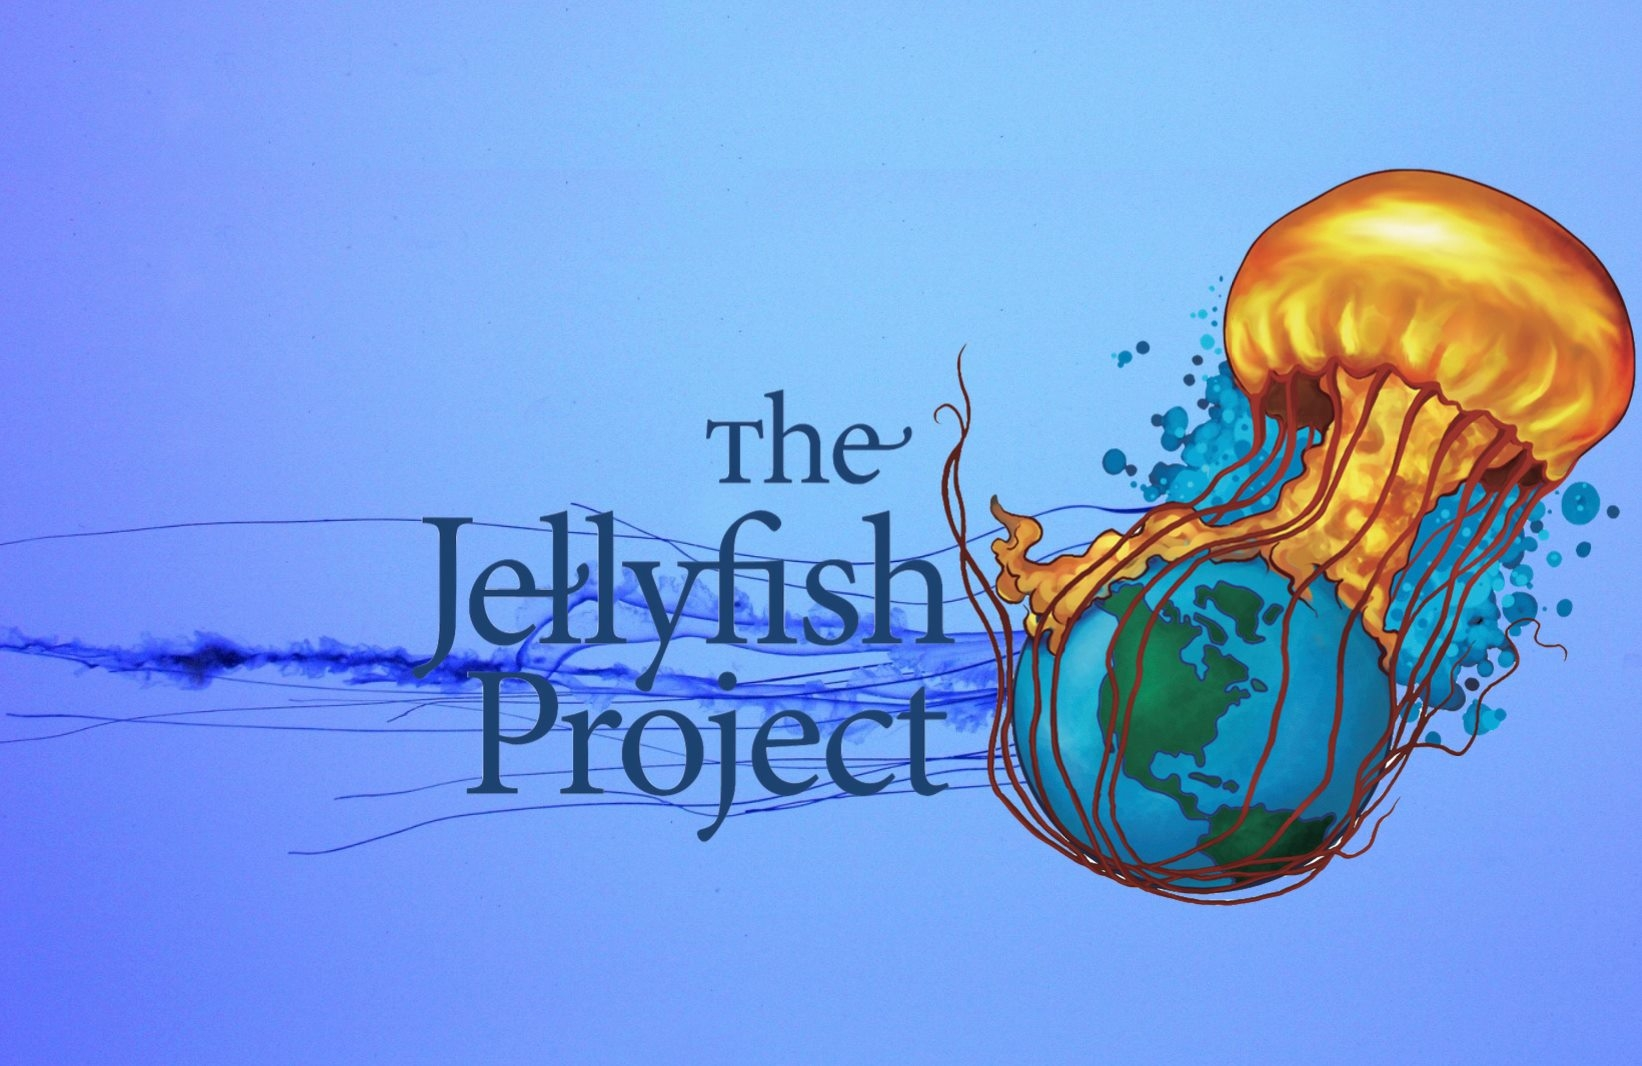 Isobel Trigger: A Show to Benefit The Jellyfish Project